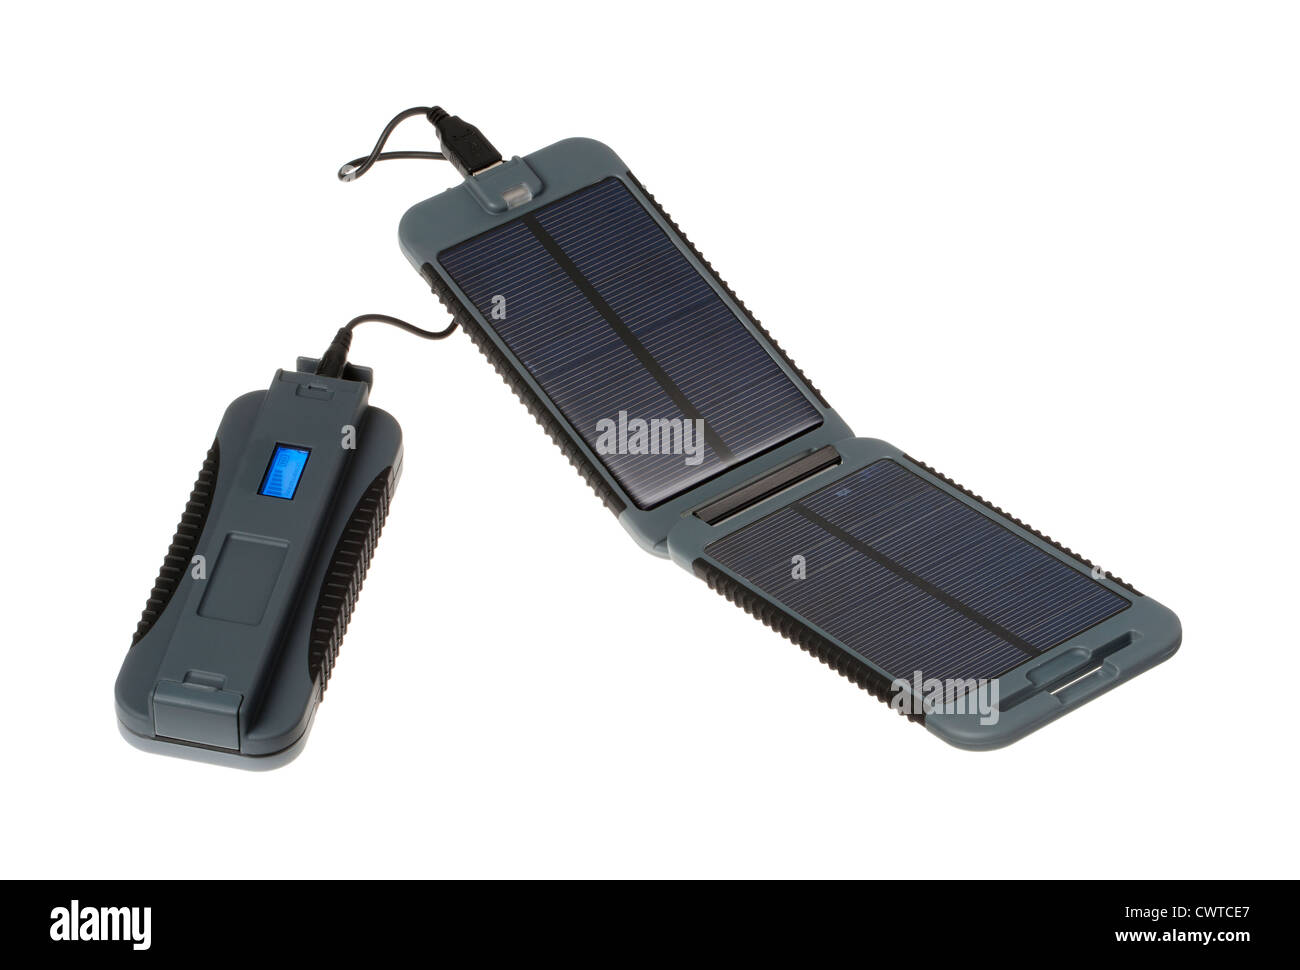 solar powered battery charger for travellers with no access to a mains supply of electricity - Stock Image